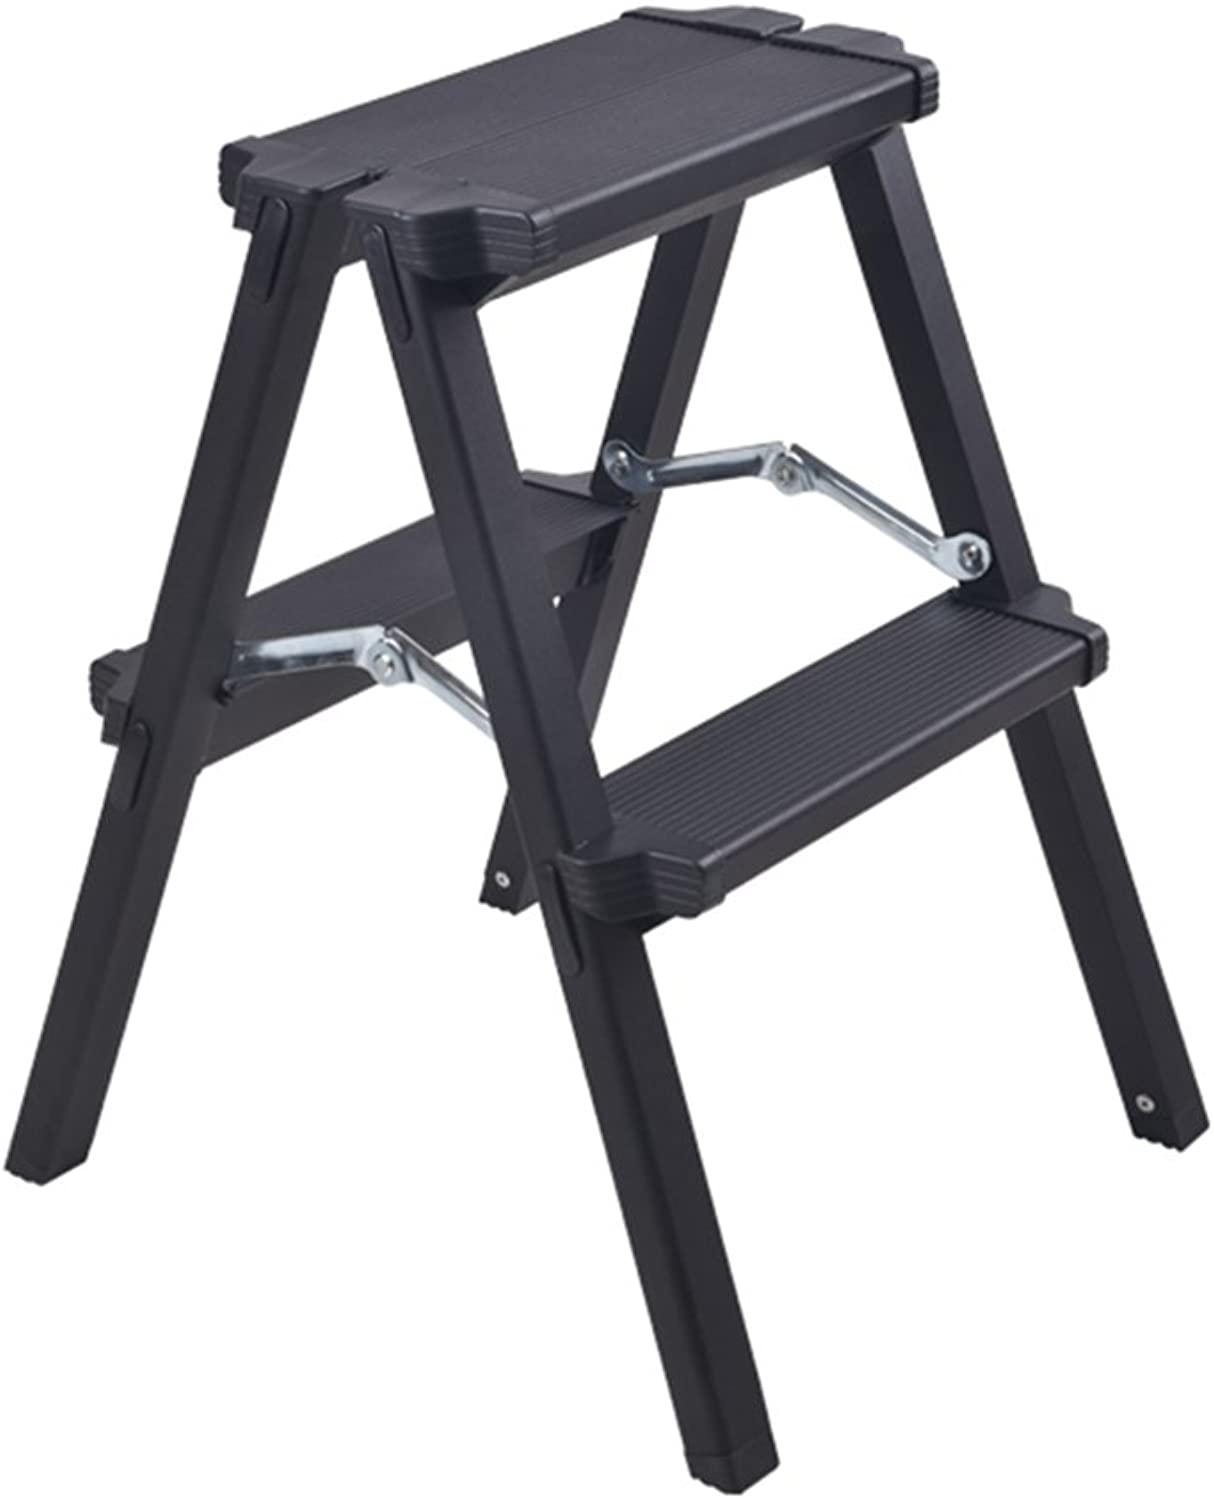 WUFENG Ladder Stool Foldable Multifunction Thicken Aluminum Alloy Engineering Ladder Ultralight Portable (color   B, Size   37x38x50cm)